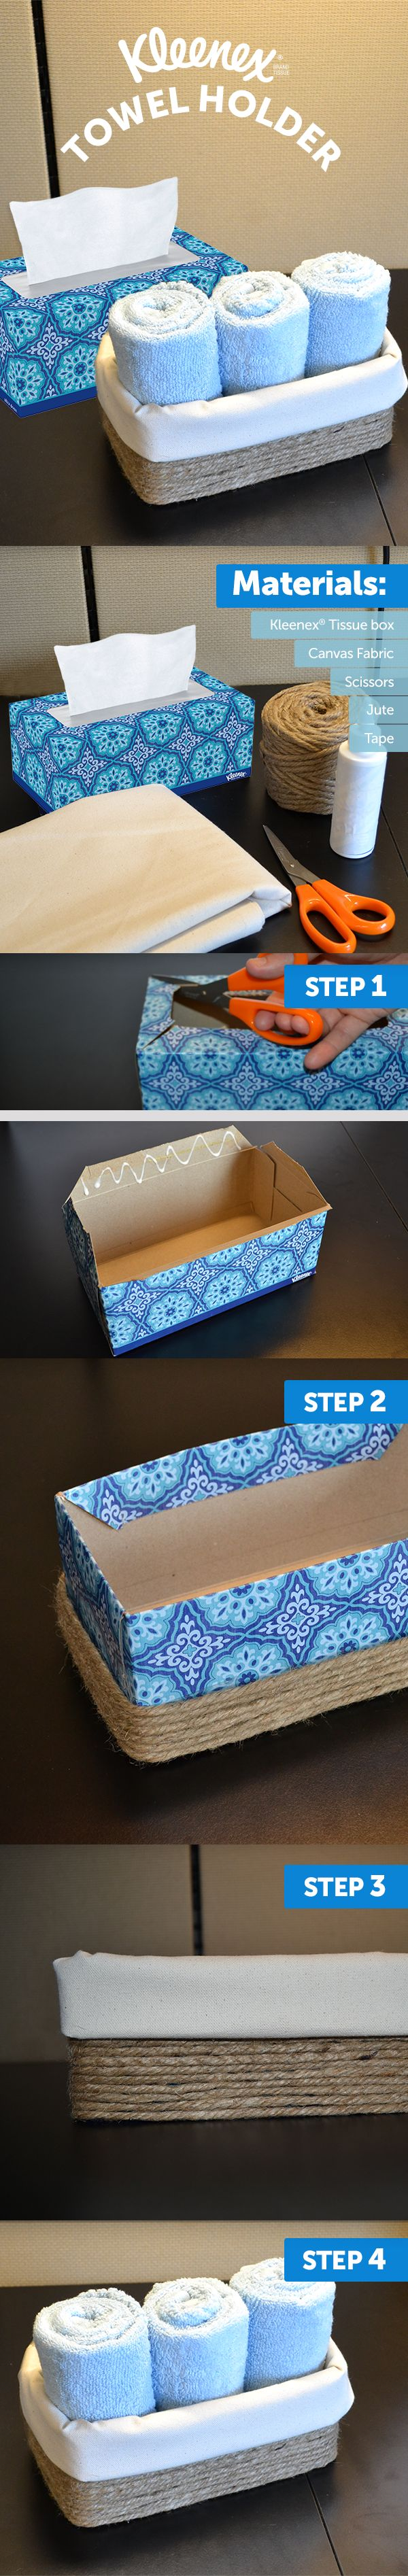 "Turn a sturdy Kleenex® tissue box into a fabric and twine towel holder. ""Oohs"" and ""aahs"" to follow."